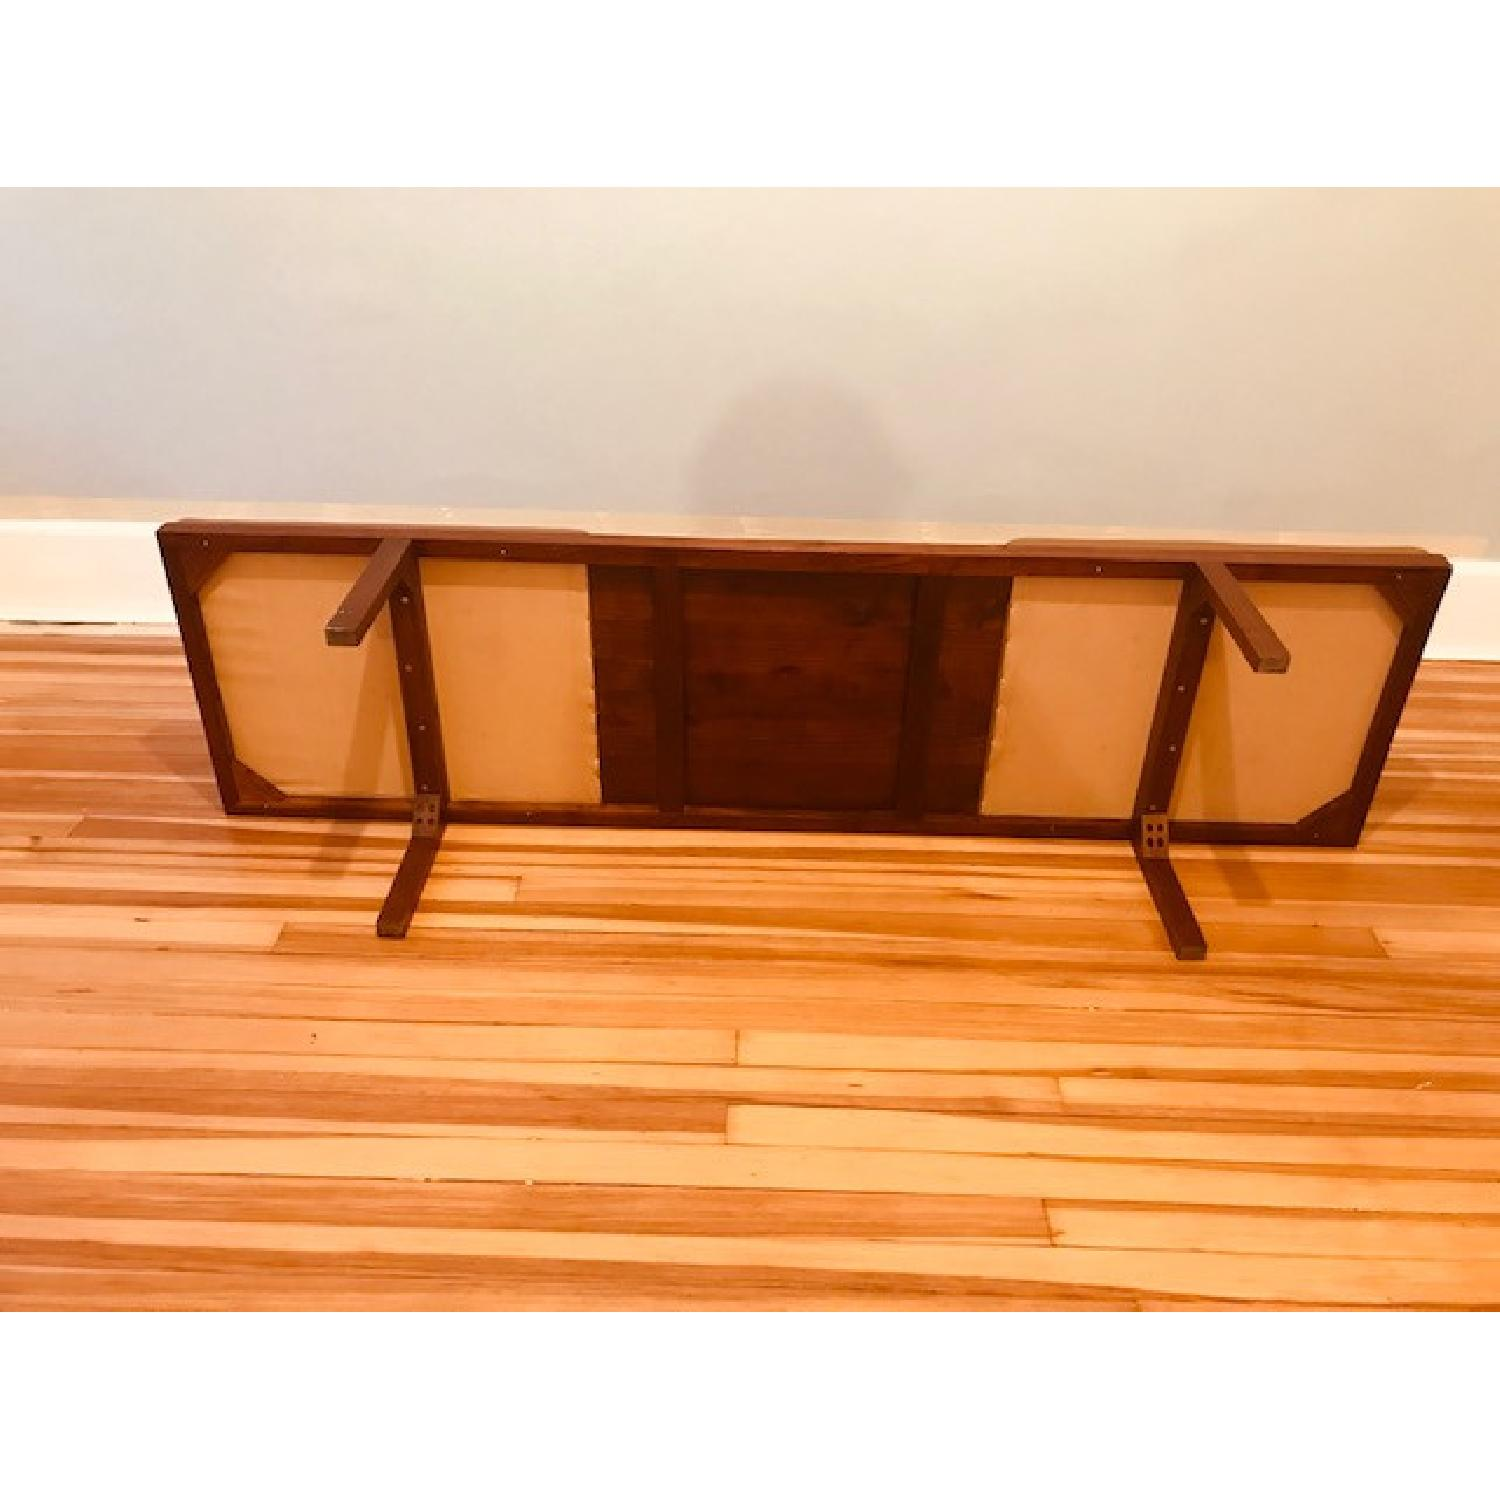 Organic Modernism Coffee Table/Mueller Bench - image-6